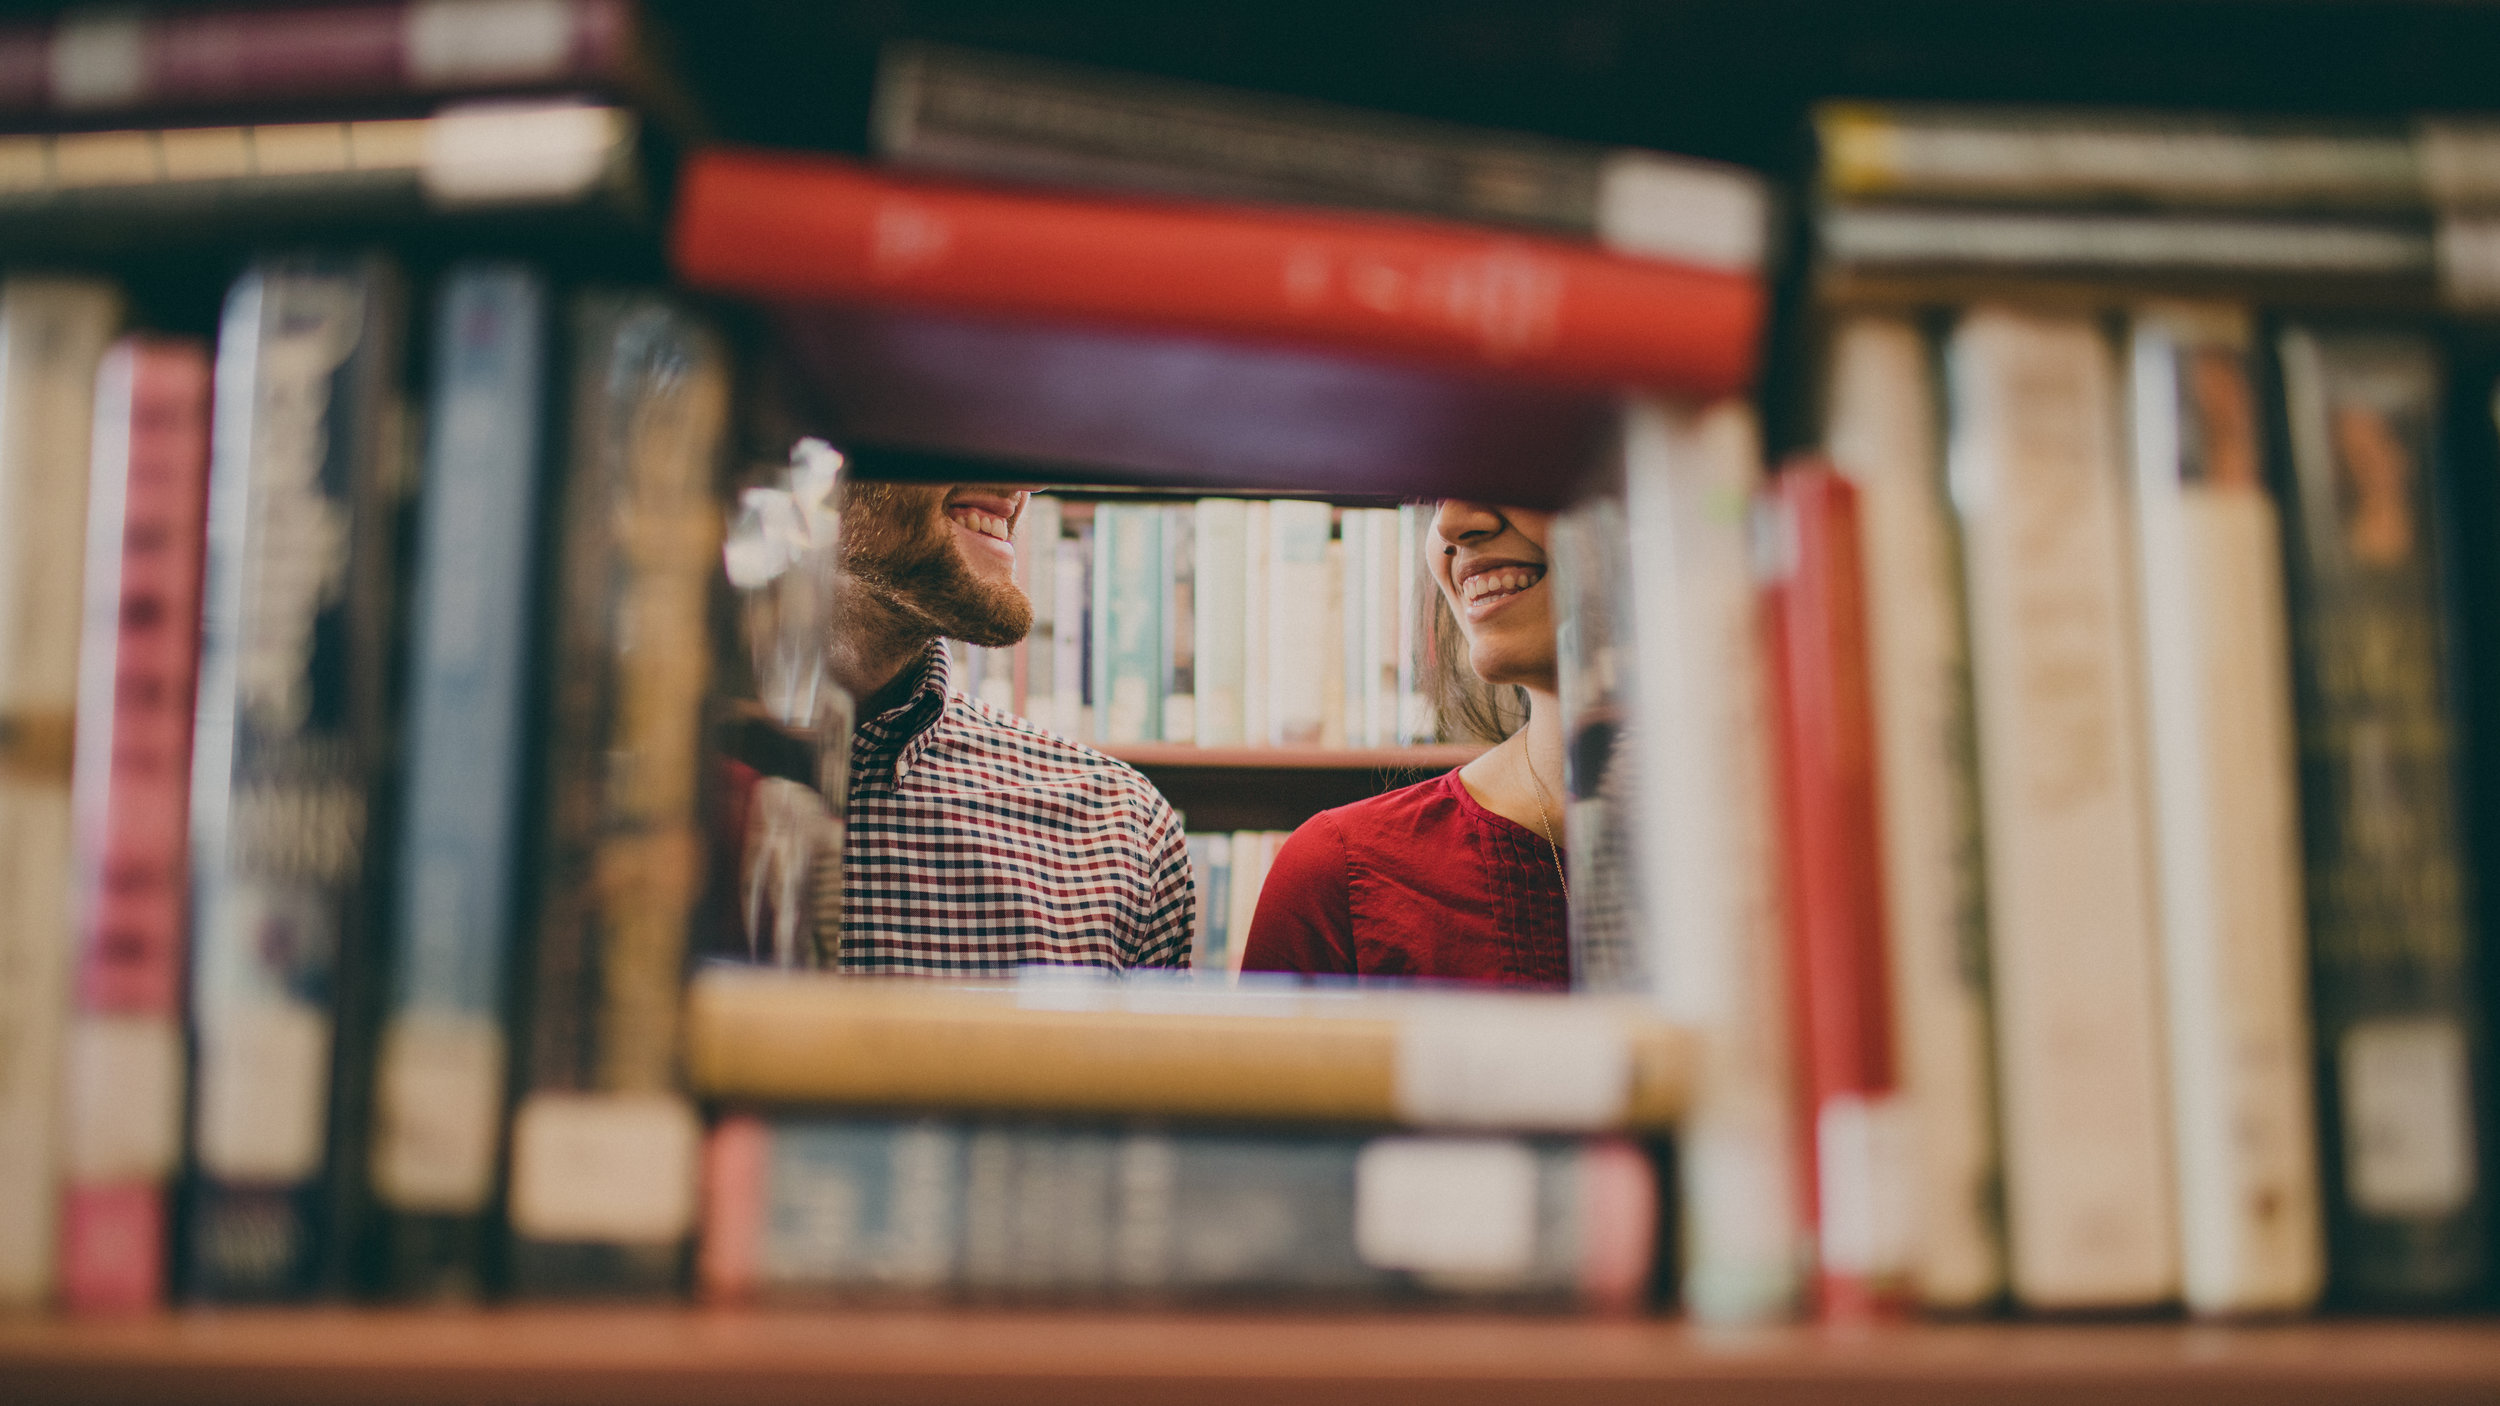 stacks of books with a man and woman smiling at eachother